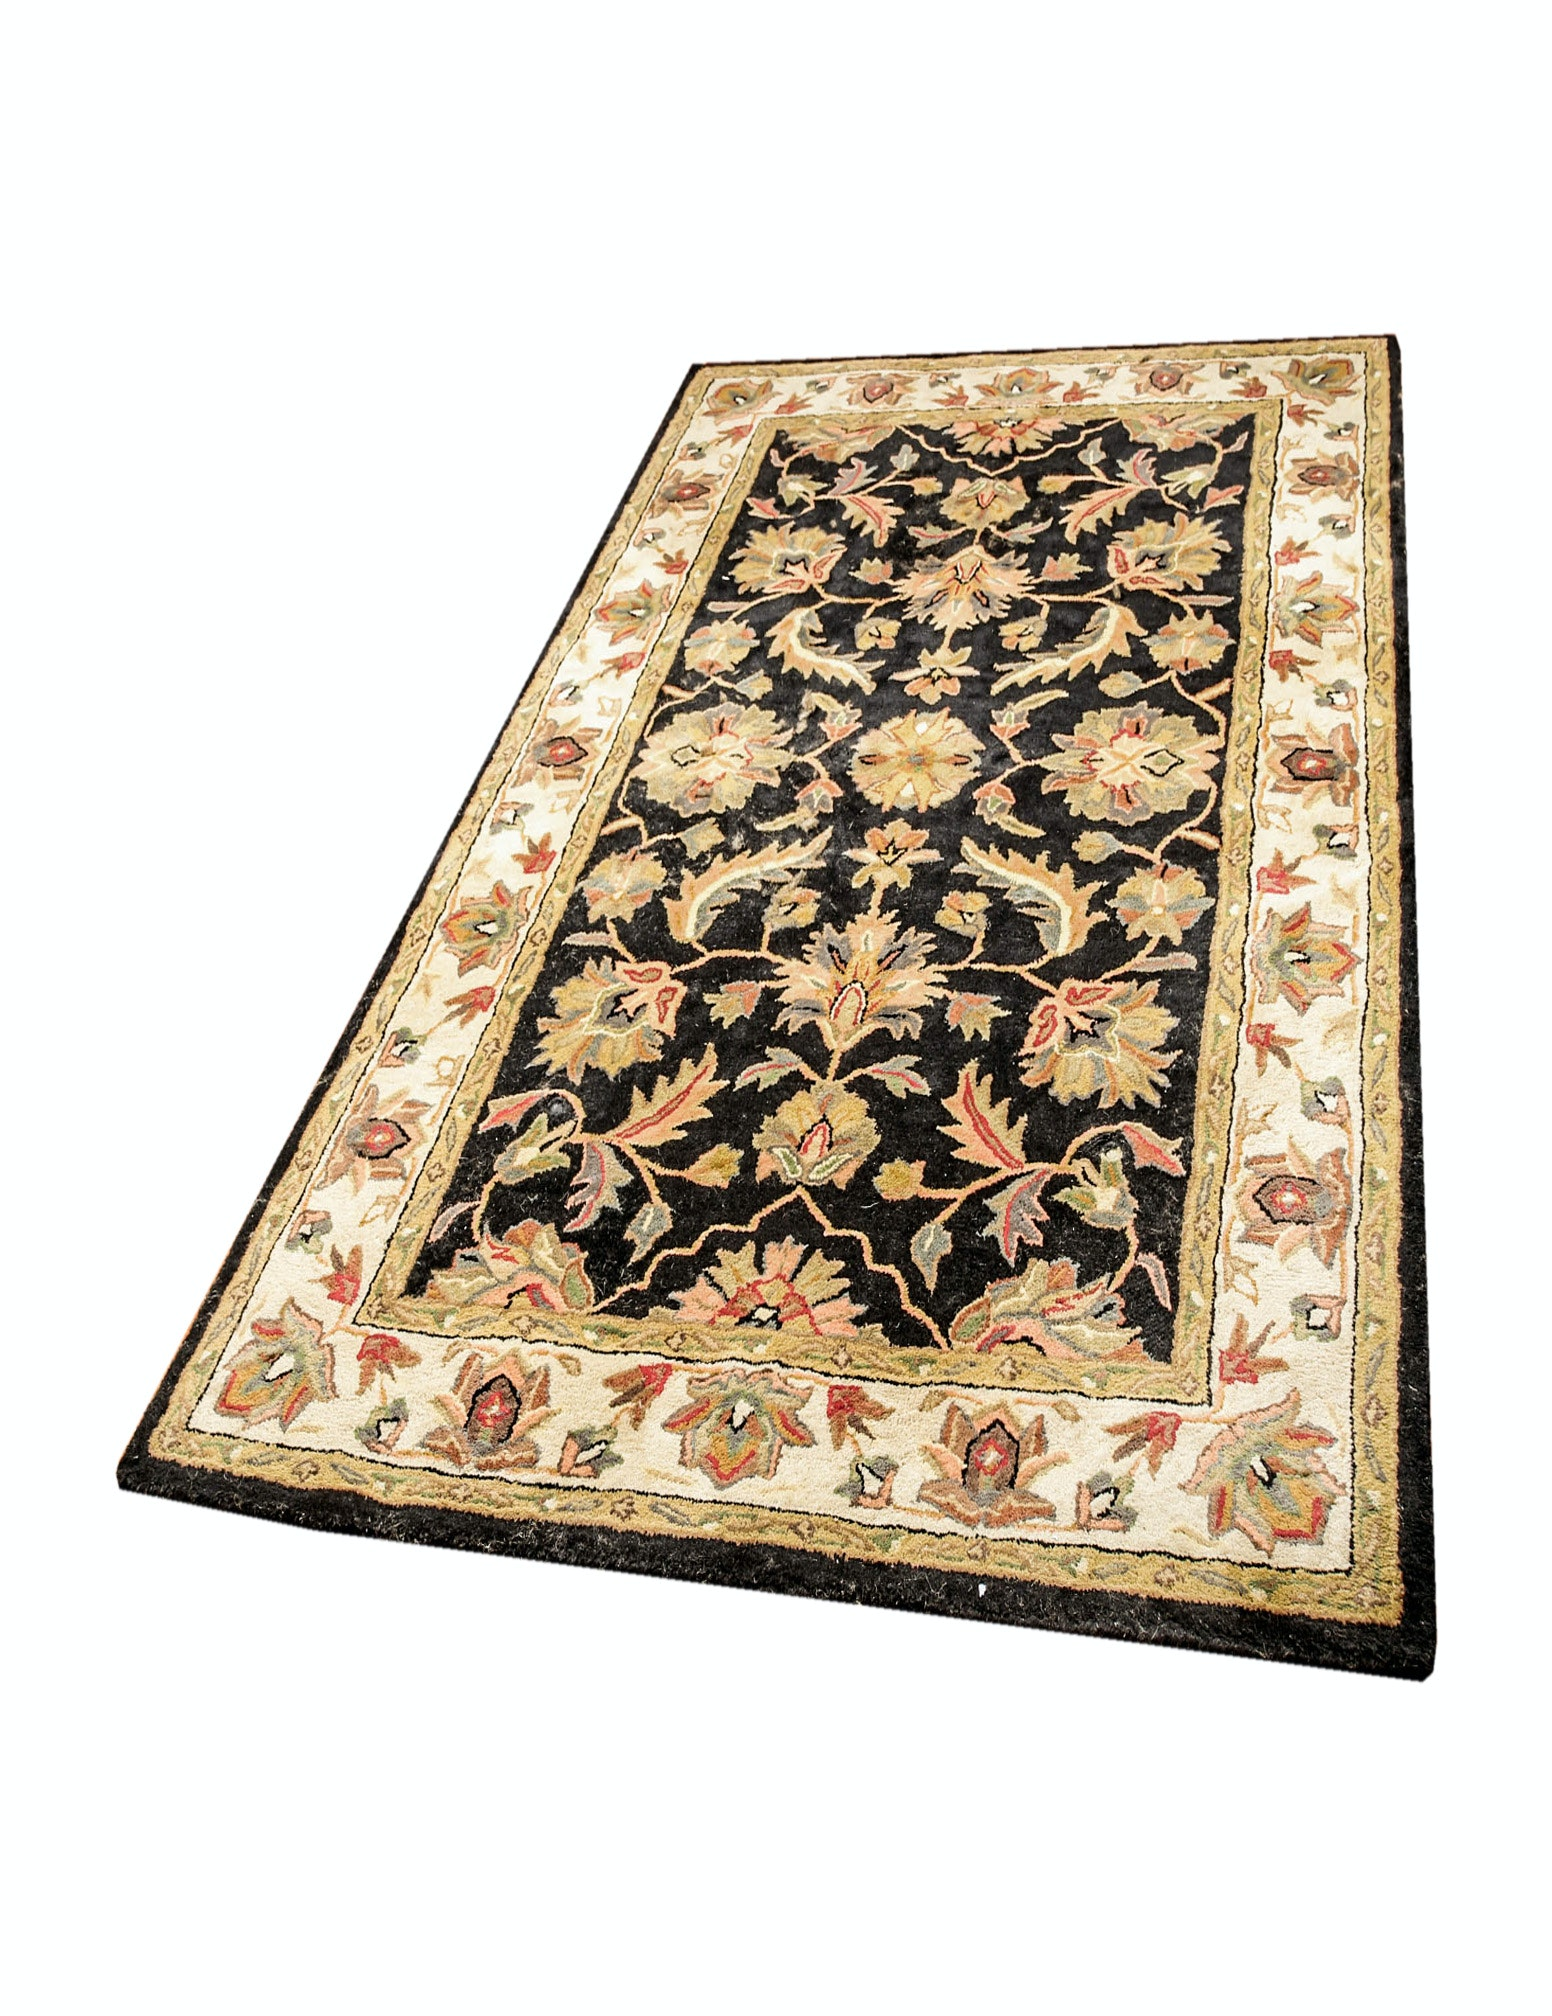 Hand Tufted Indian Agra Style Wool Area Rug by Tudor